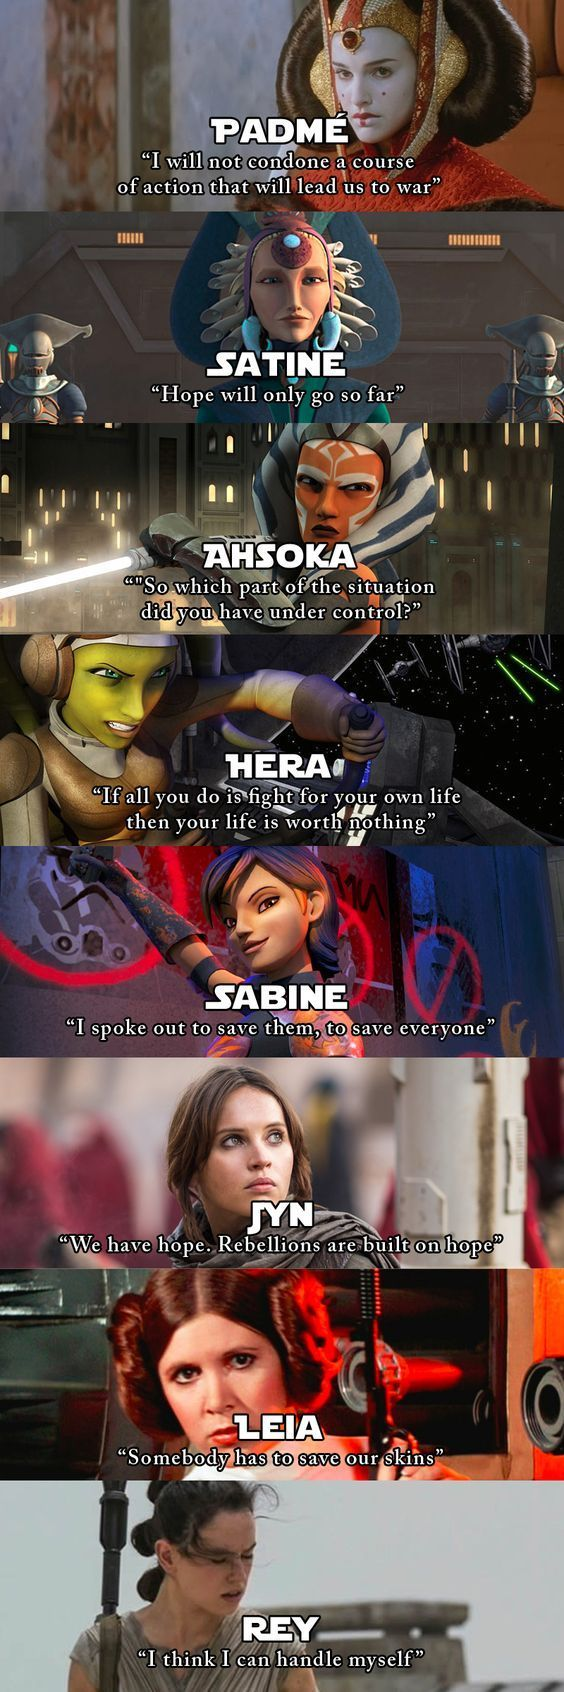 Women of Star Wars with quotes that do a good job of summing up who they are.